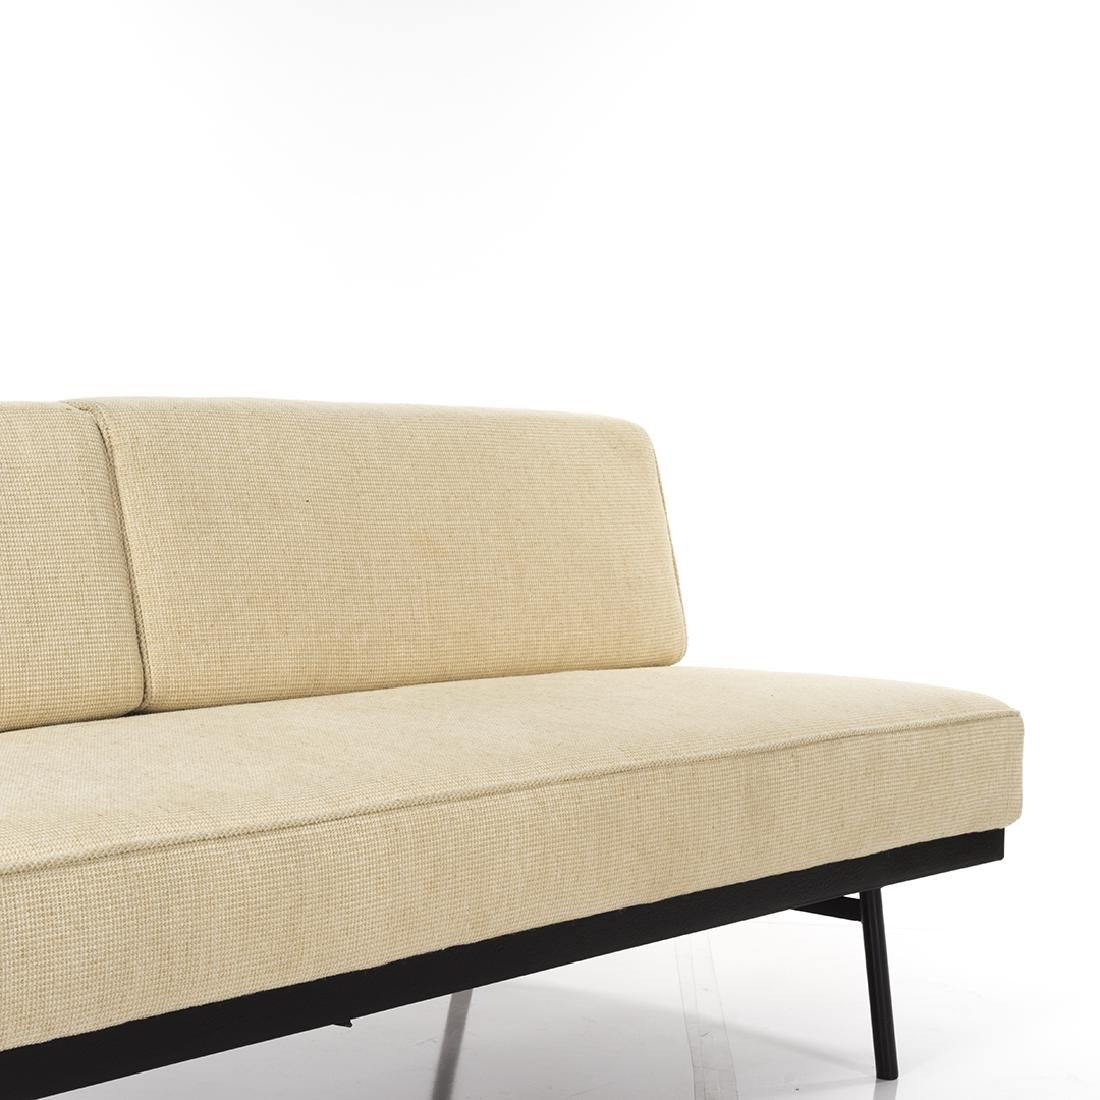 Bates and Gregory Sofa - 4